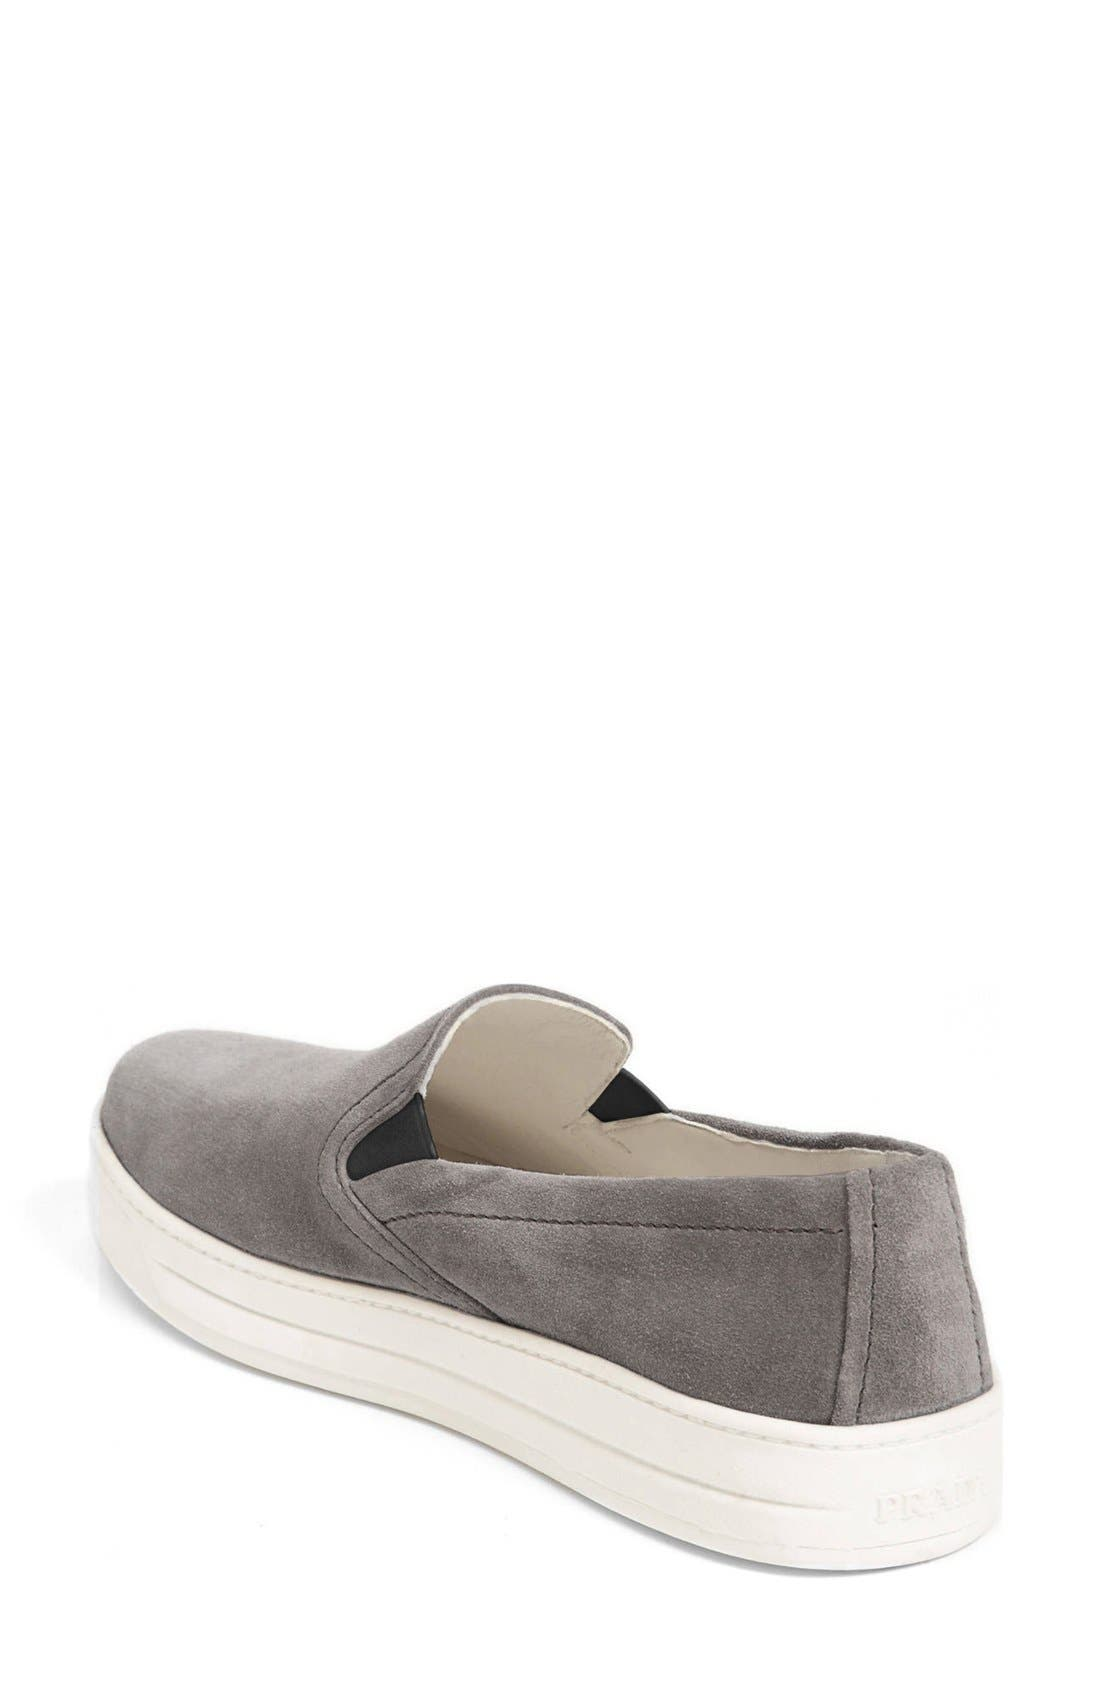 Slip-On Sneaker,                             Alternate thumbnail 28, color,